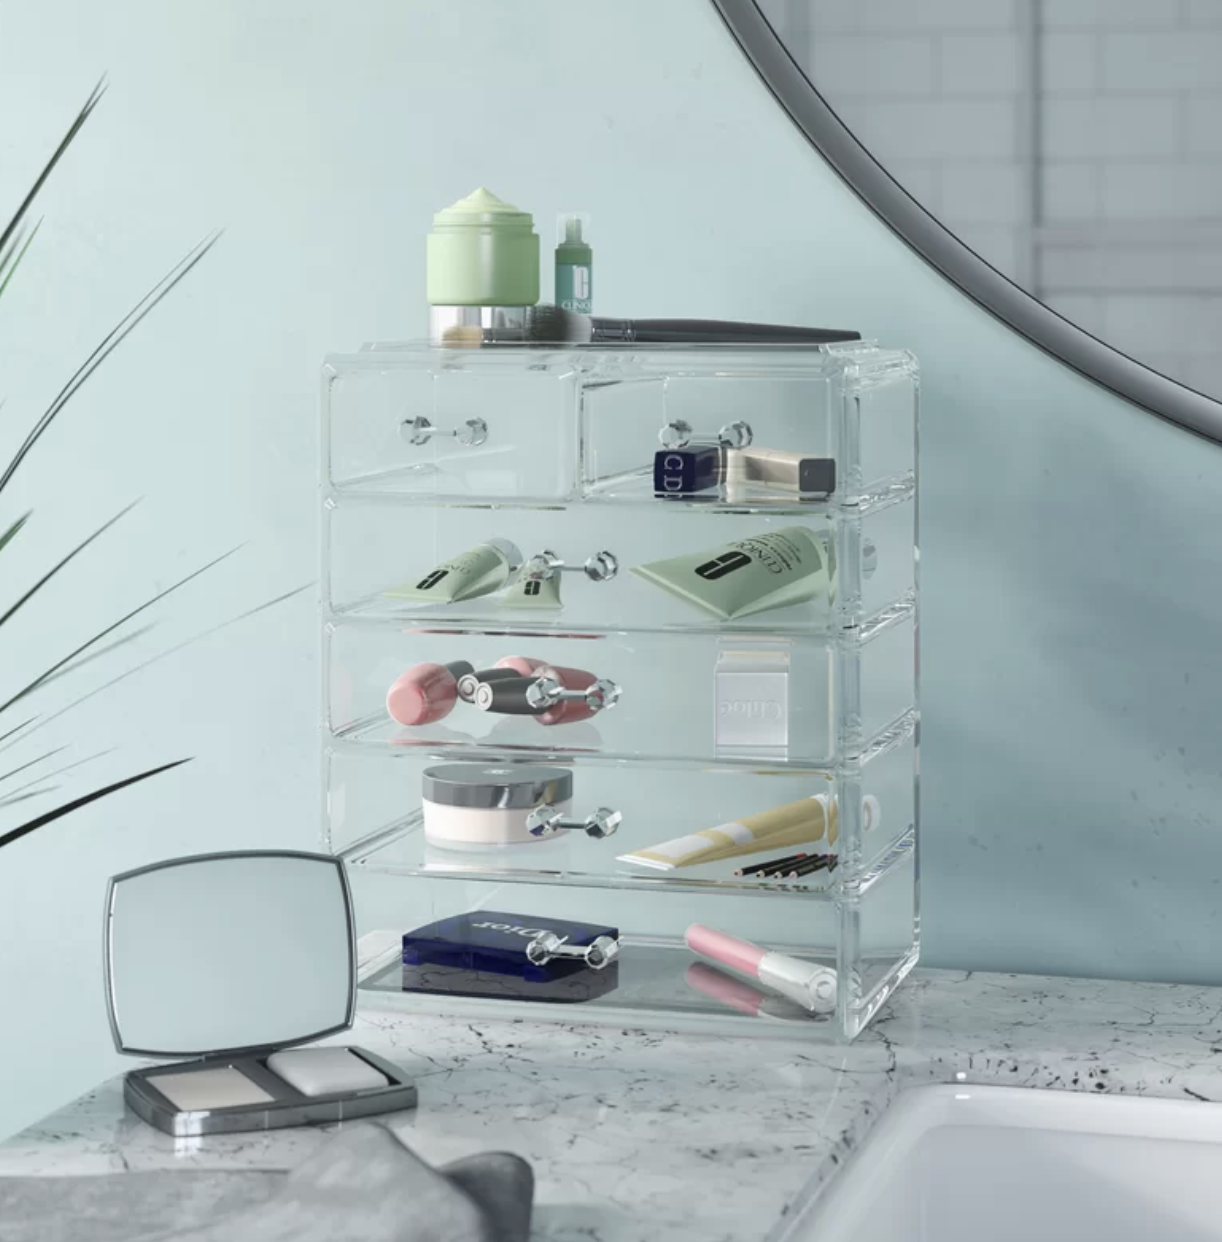 Clear rectangle cosmetics organizer filled with various makeup products on a marble bathroom countertop